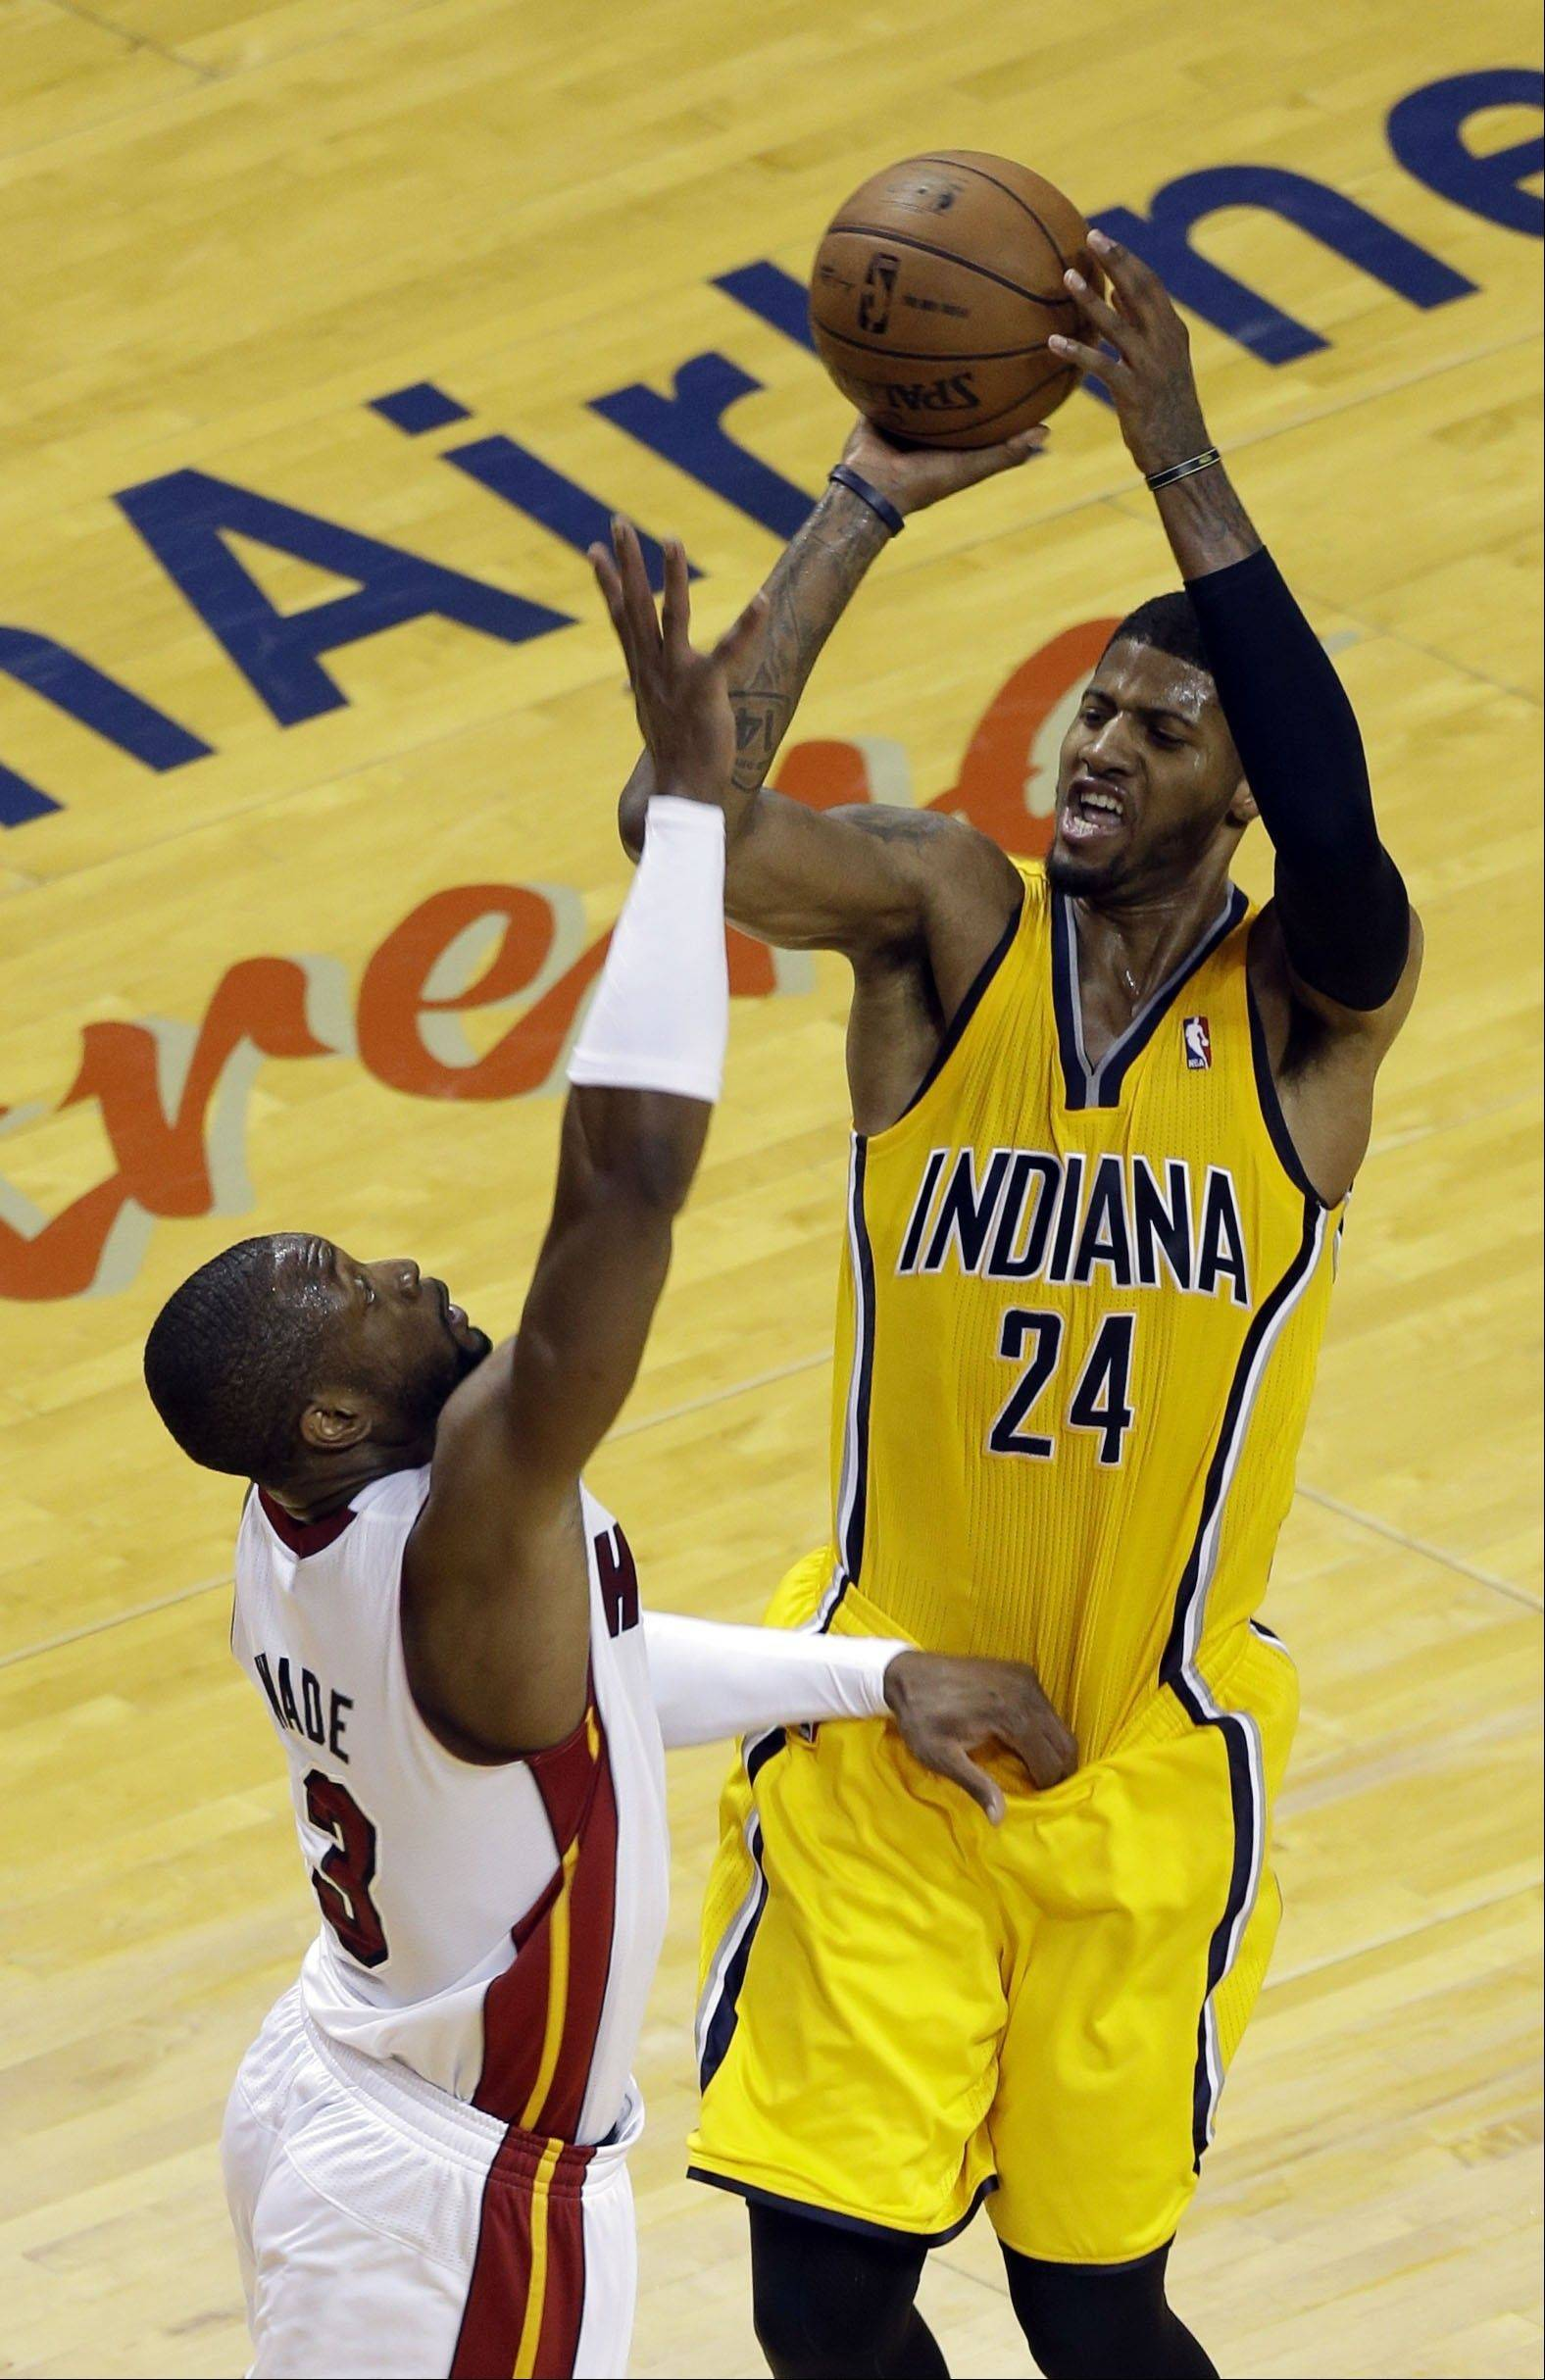 Indiana Pacers forward Paul George (24) attempt to score as Miami Heat guard Dwyane Wade (3) defends during the second half of Game 2 in their NBA basketball Eastern Conference finals playoff series, Friday, May 24, 2013, in Miami. The Pacers defeated the Heat 97-93.